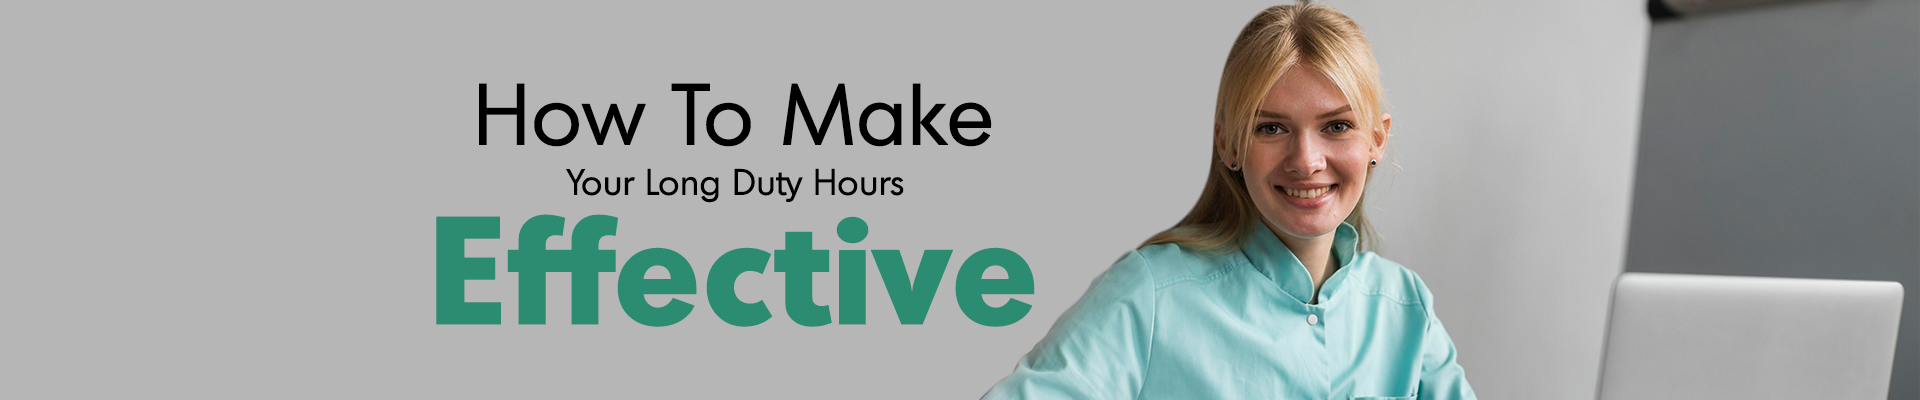 How Nurses Can Make Their Long Duty Hours Effective?